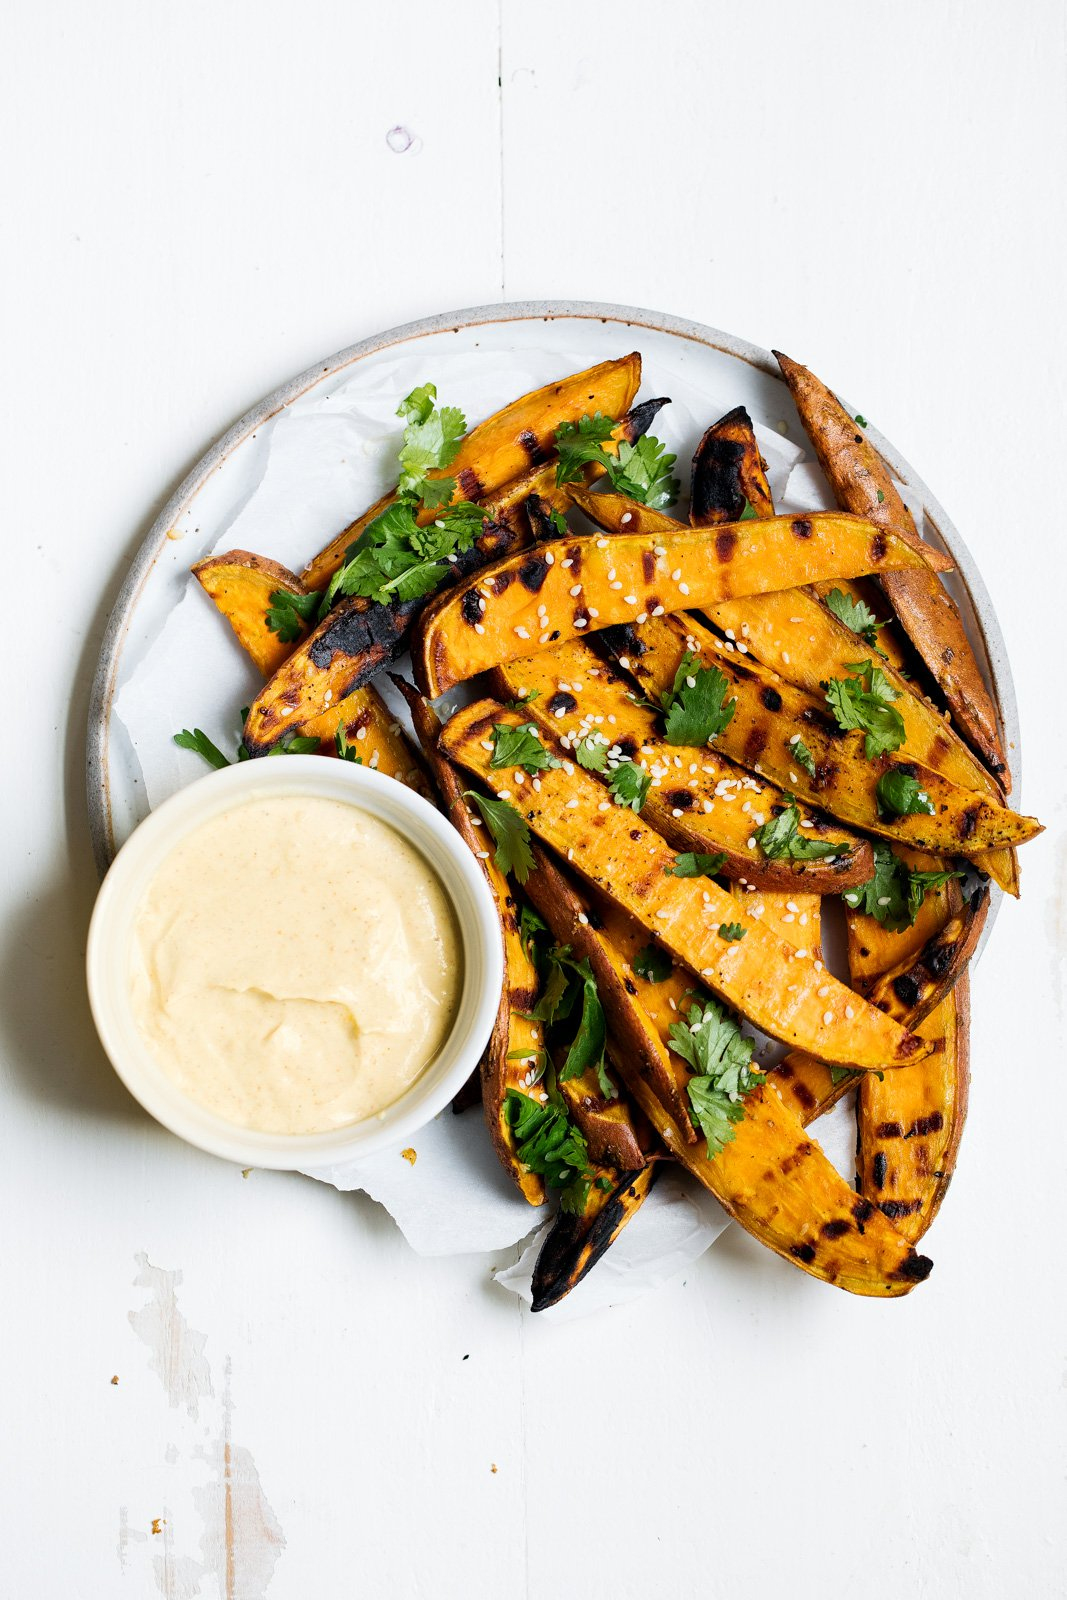 Did you know you can make grilled sweet potato fries in no time at all? Try this amazing recipe for sweet potato fries with a hint of garlic and sesame flavor! Served with a yogurt curry dip.